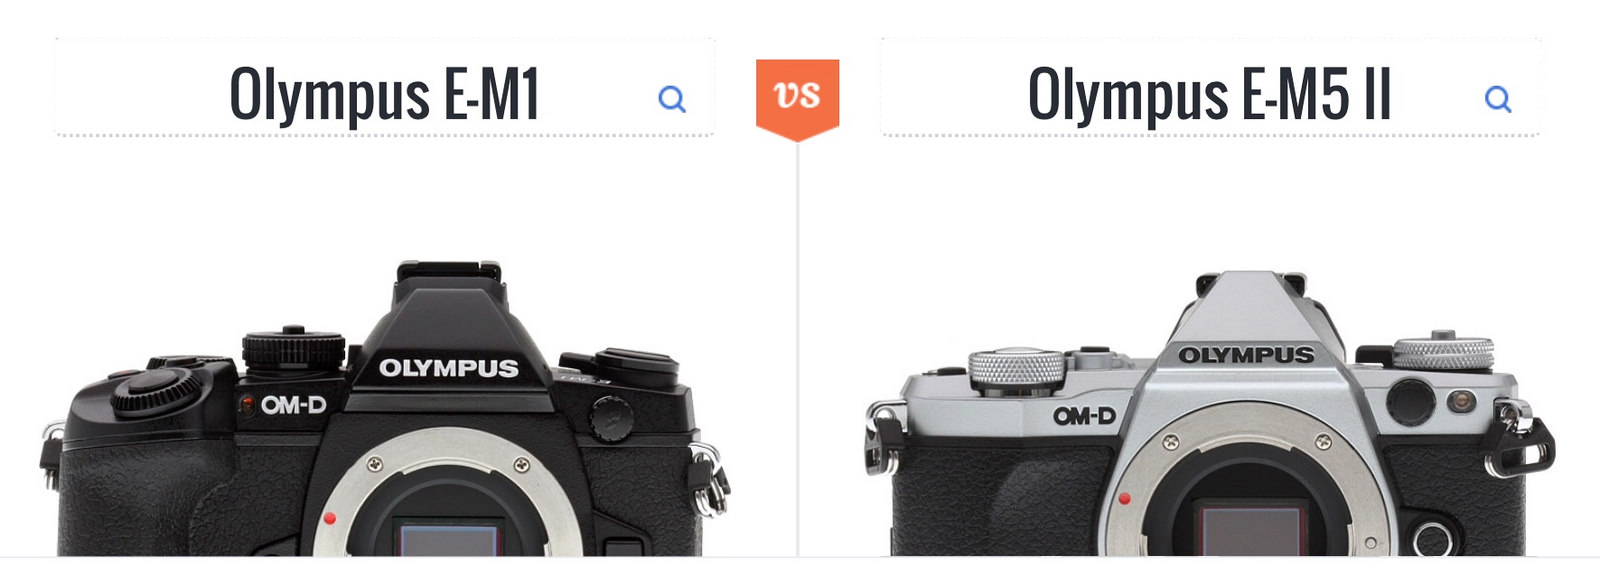 Should I replace my Olympus OM-D E-M1 with an E-M5 II?